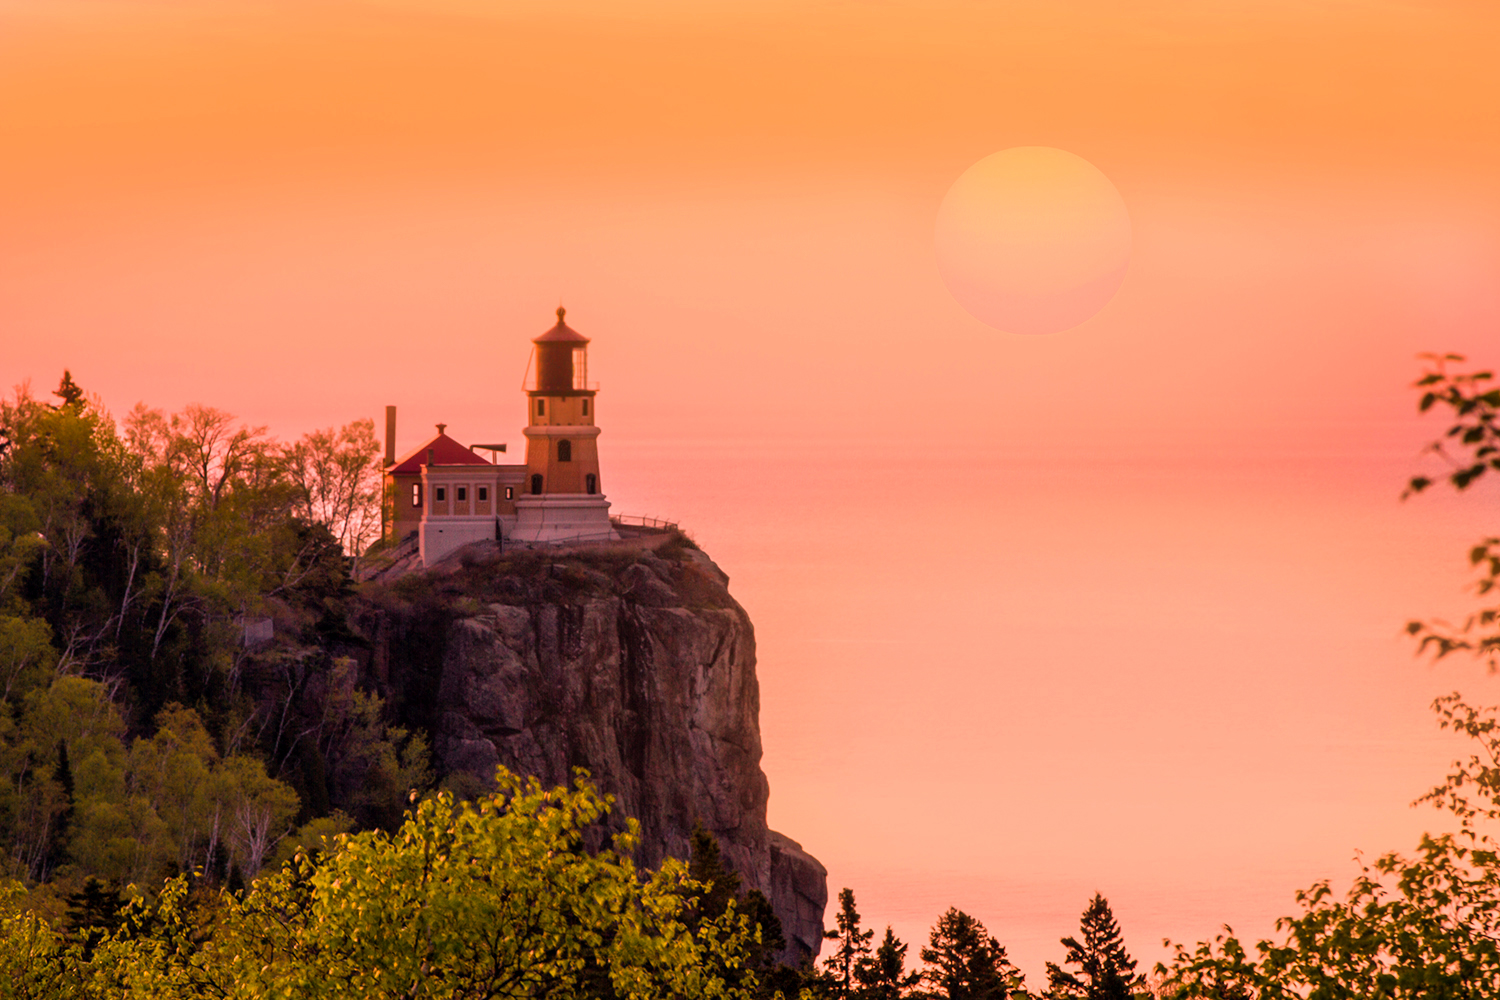 Lighthouse on cliff against pink sky